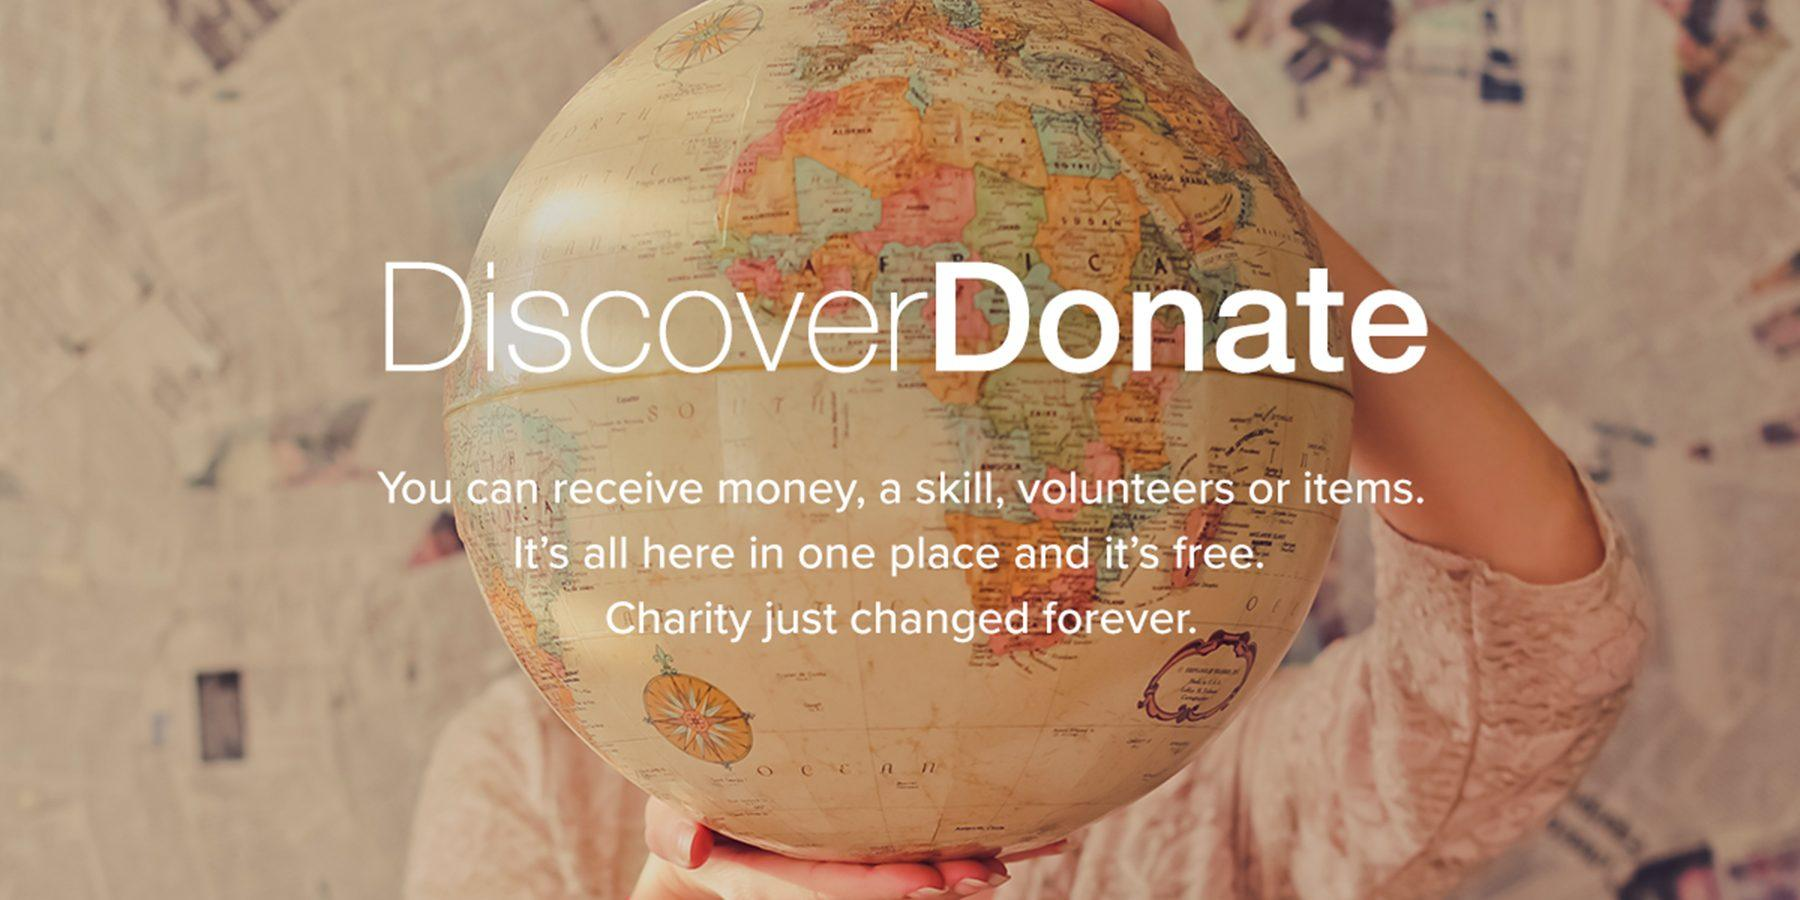 DiscoverDonate Ready to Launch